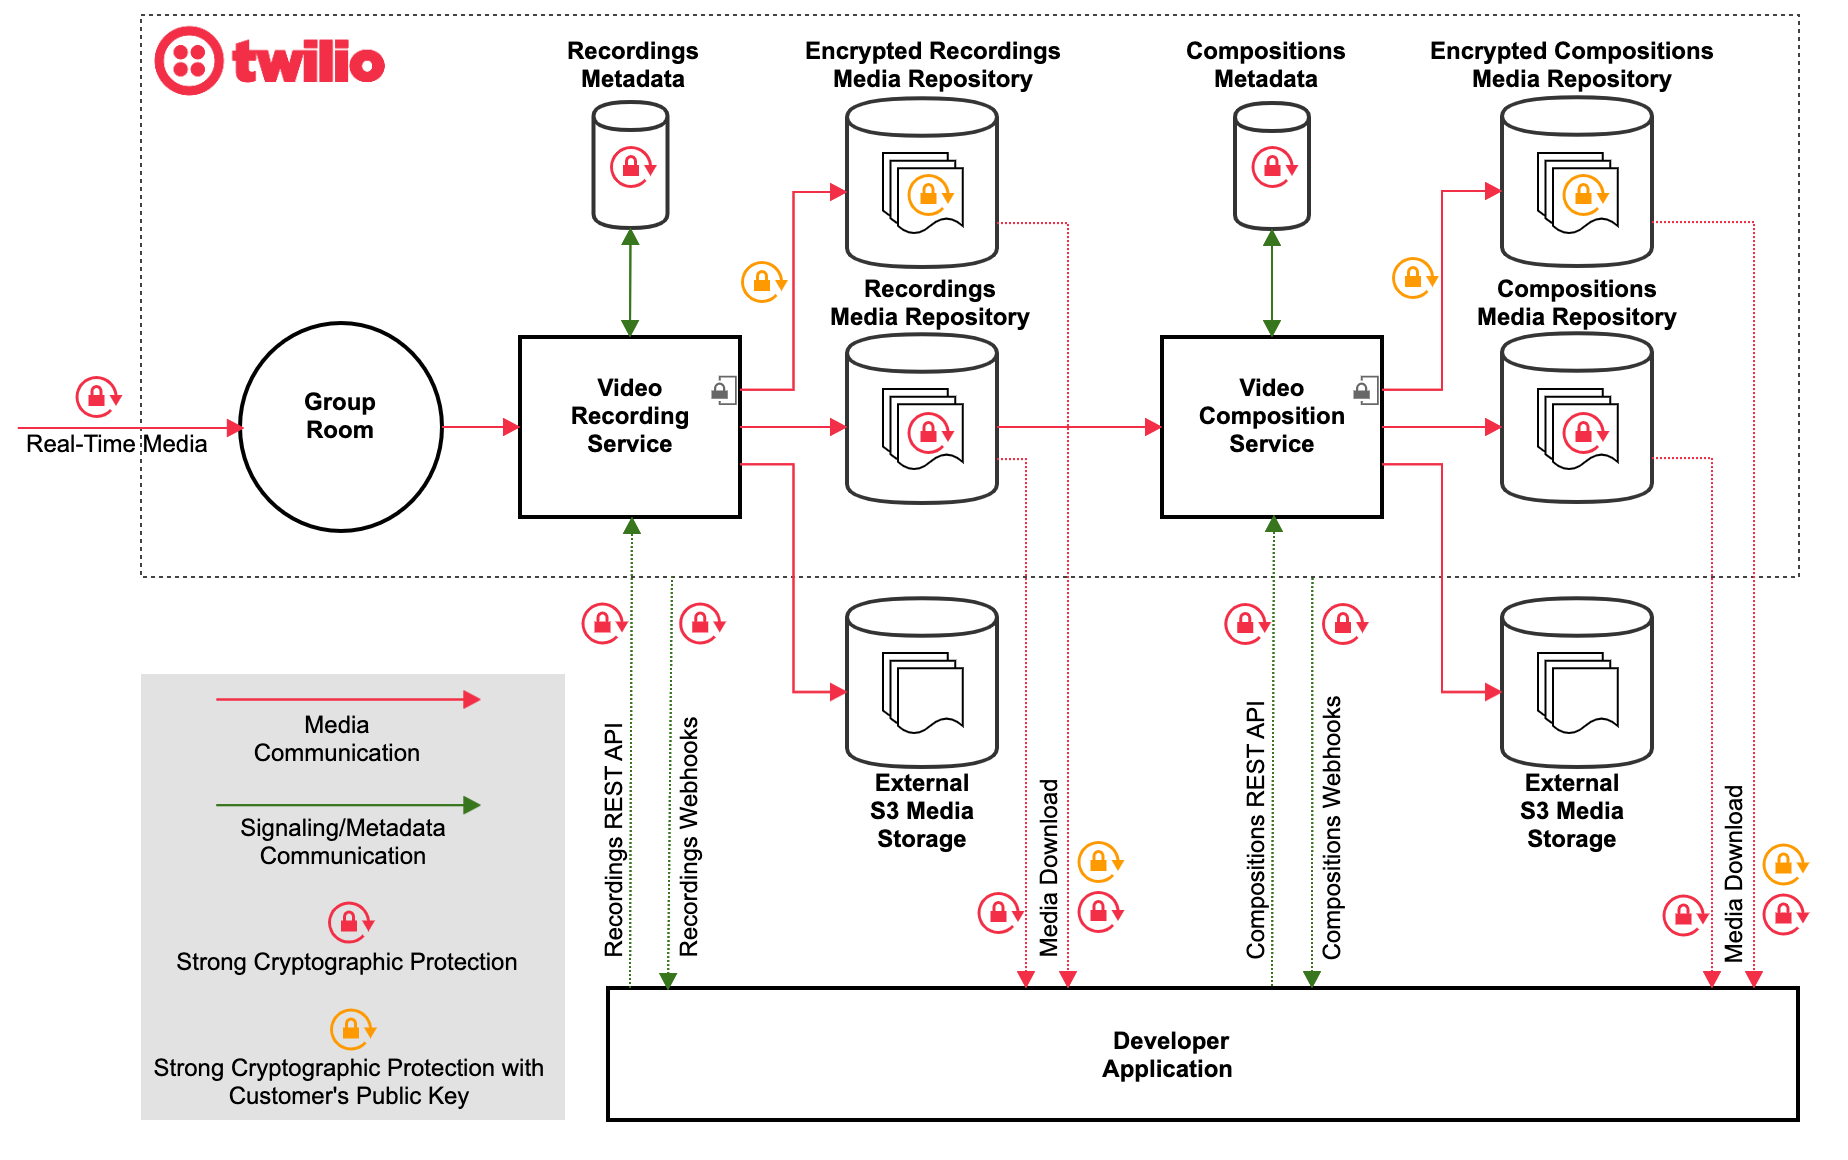 Twilio Video Recordings information flow